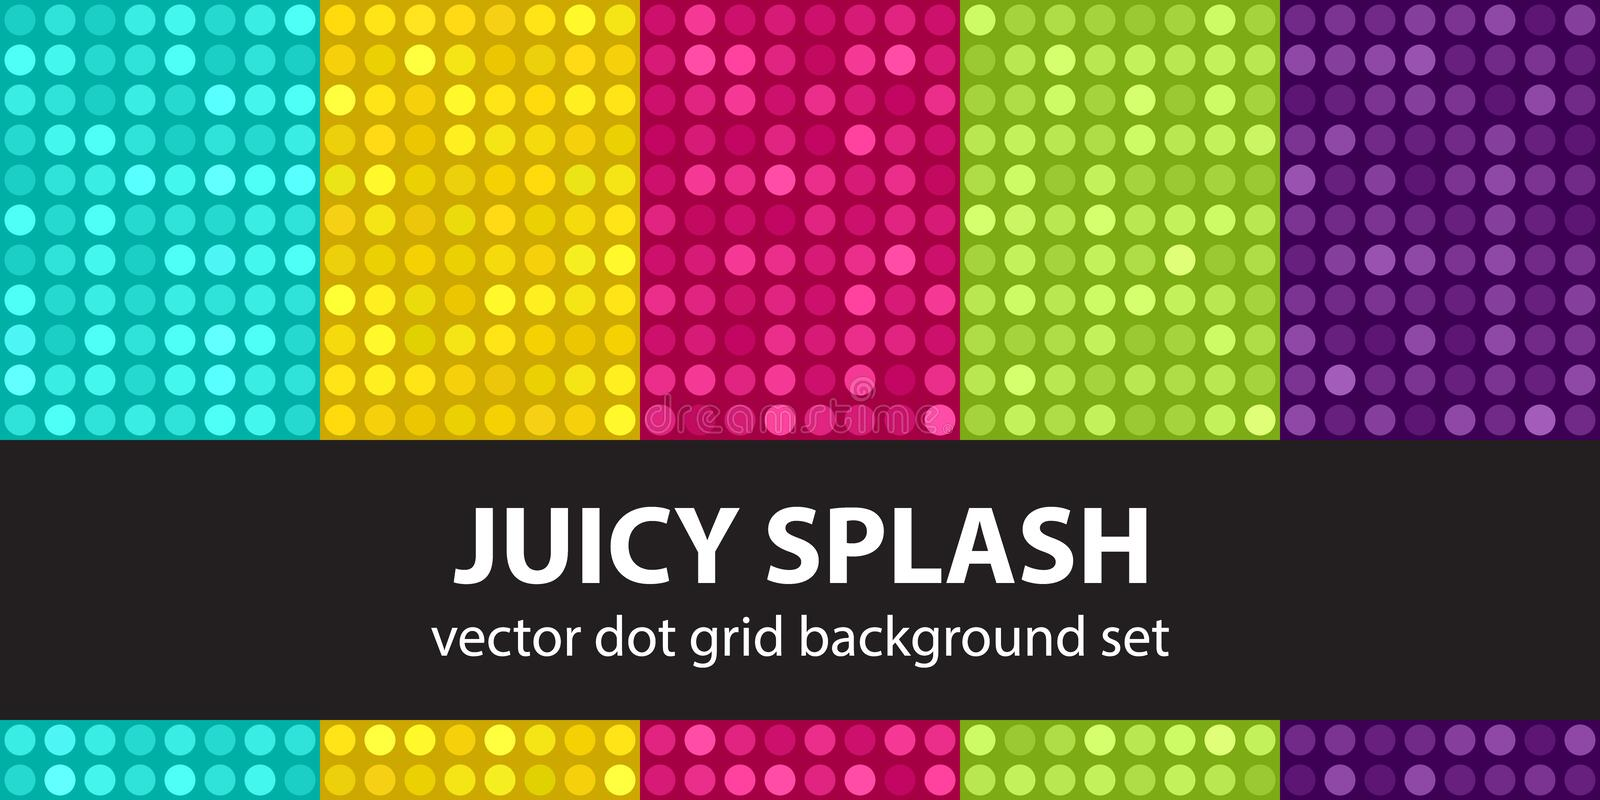 Polka dot pattern set Juicy Splash. Vector seamless dot backgrounds with cyan, yellow, rose, green, violet circles on multicolor backdrops royalty free illustration